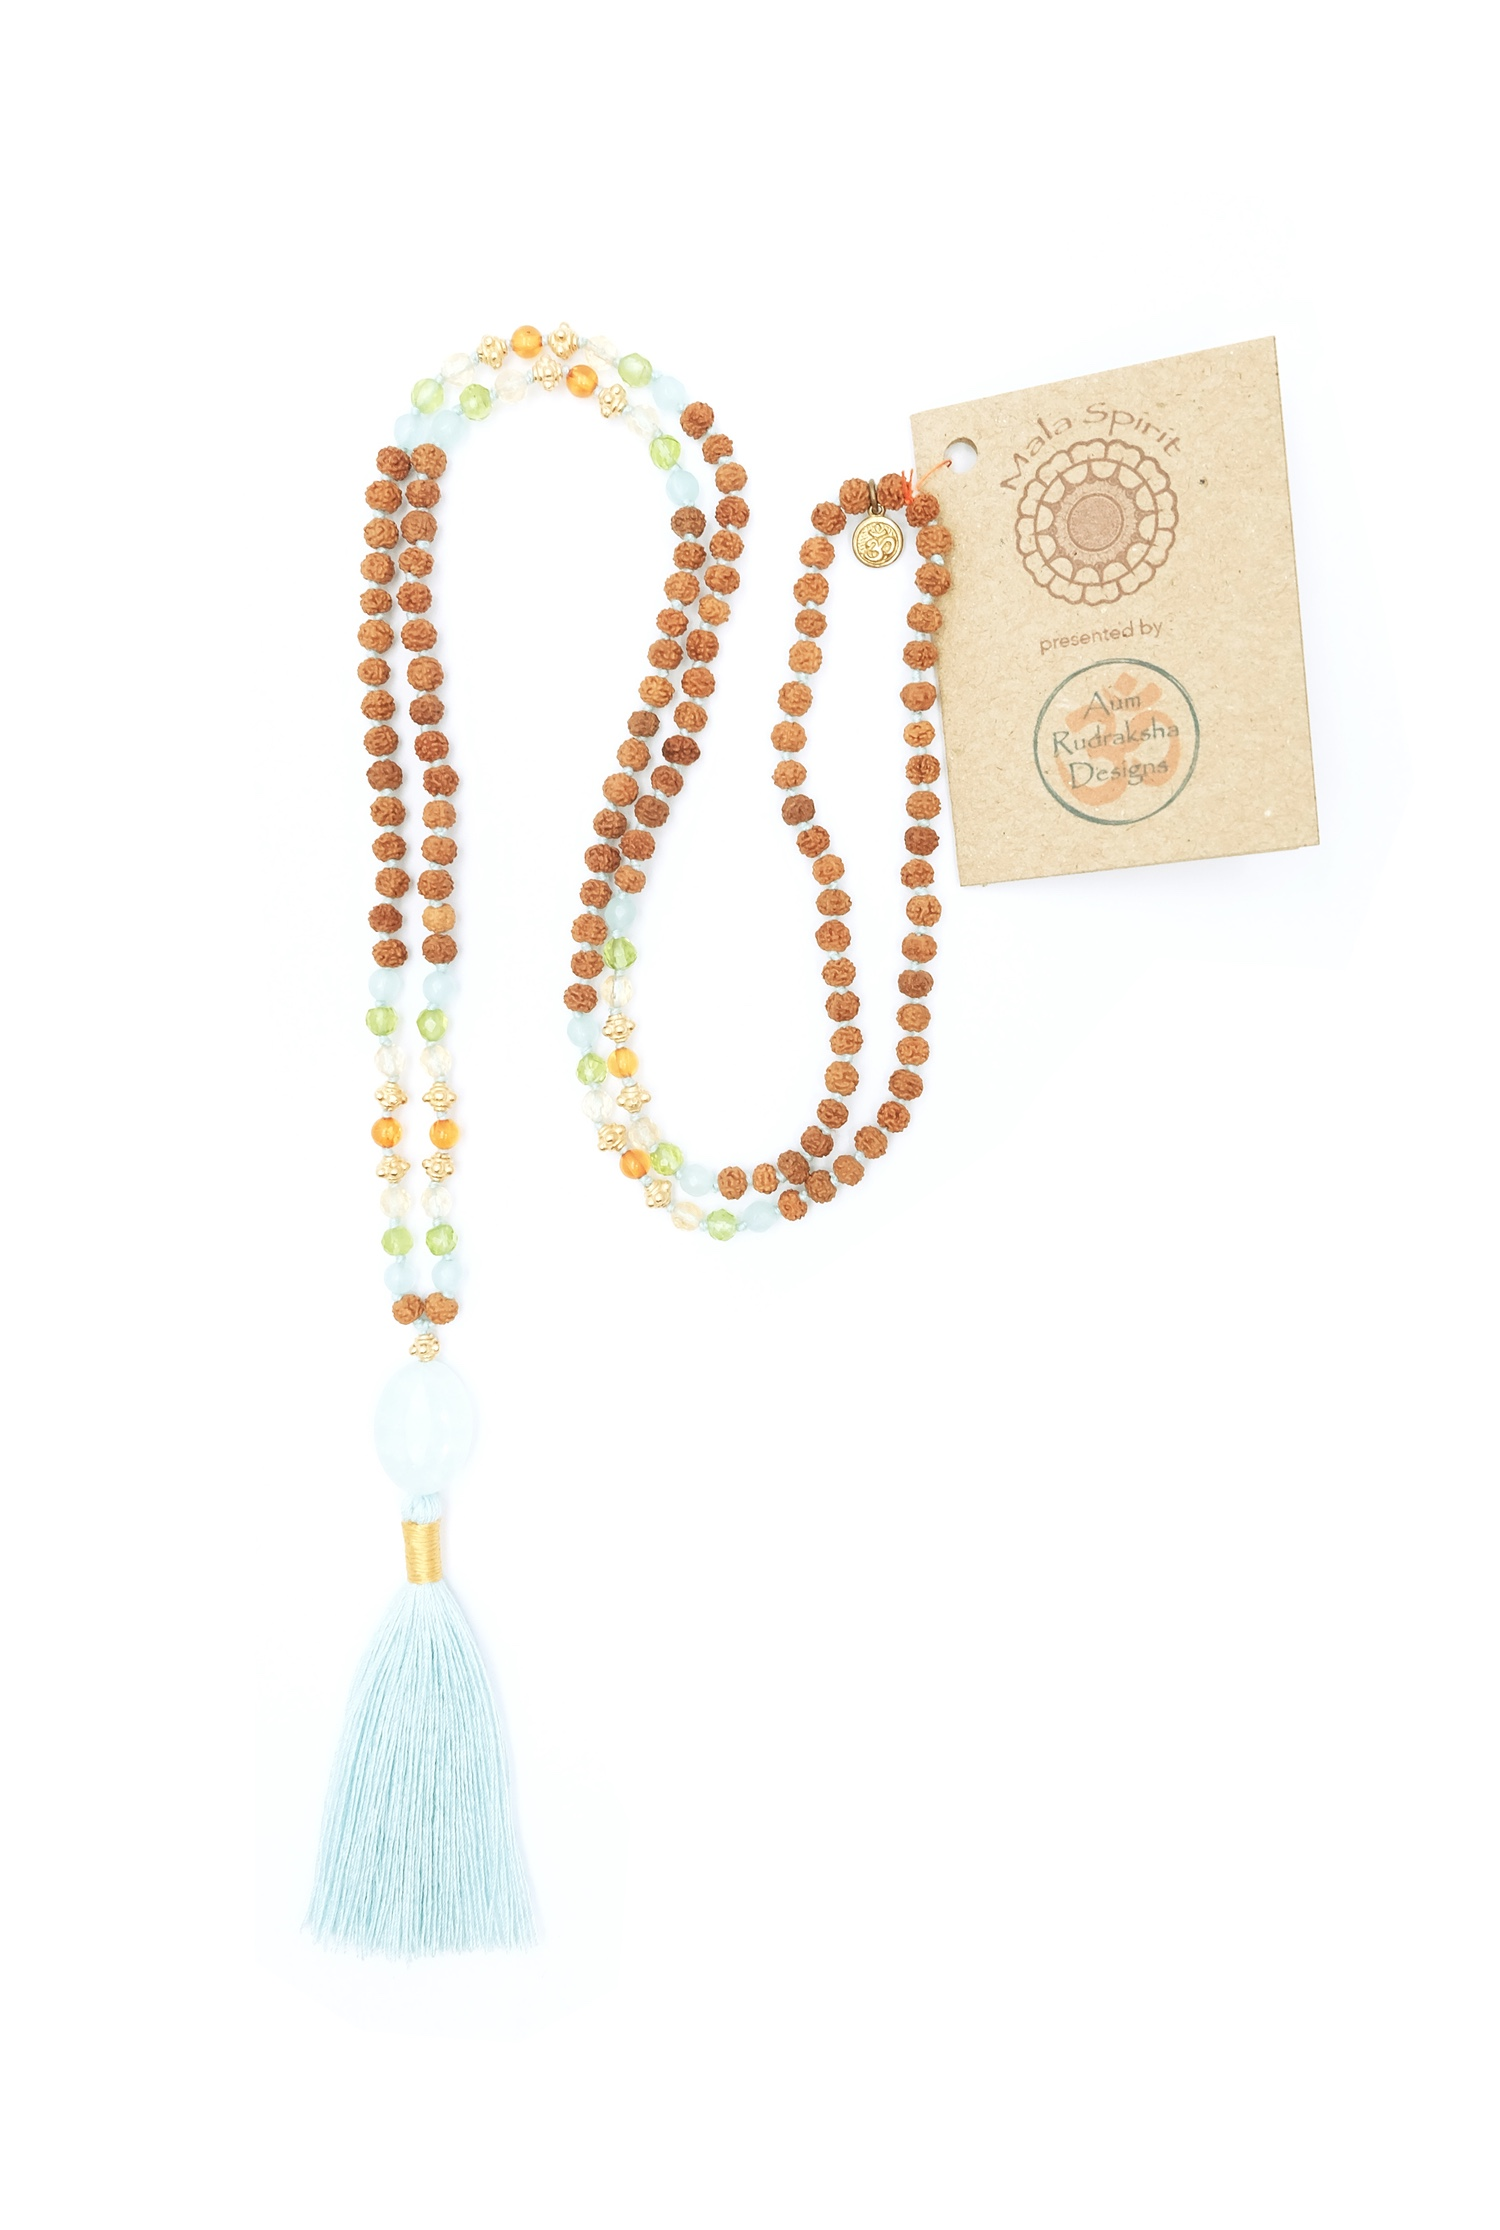 aquamarine-mala-necklace